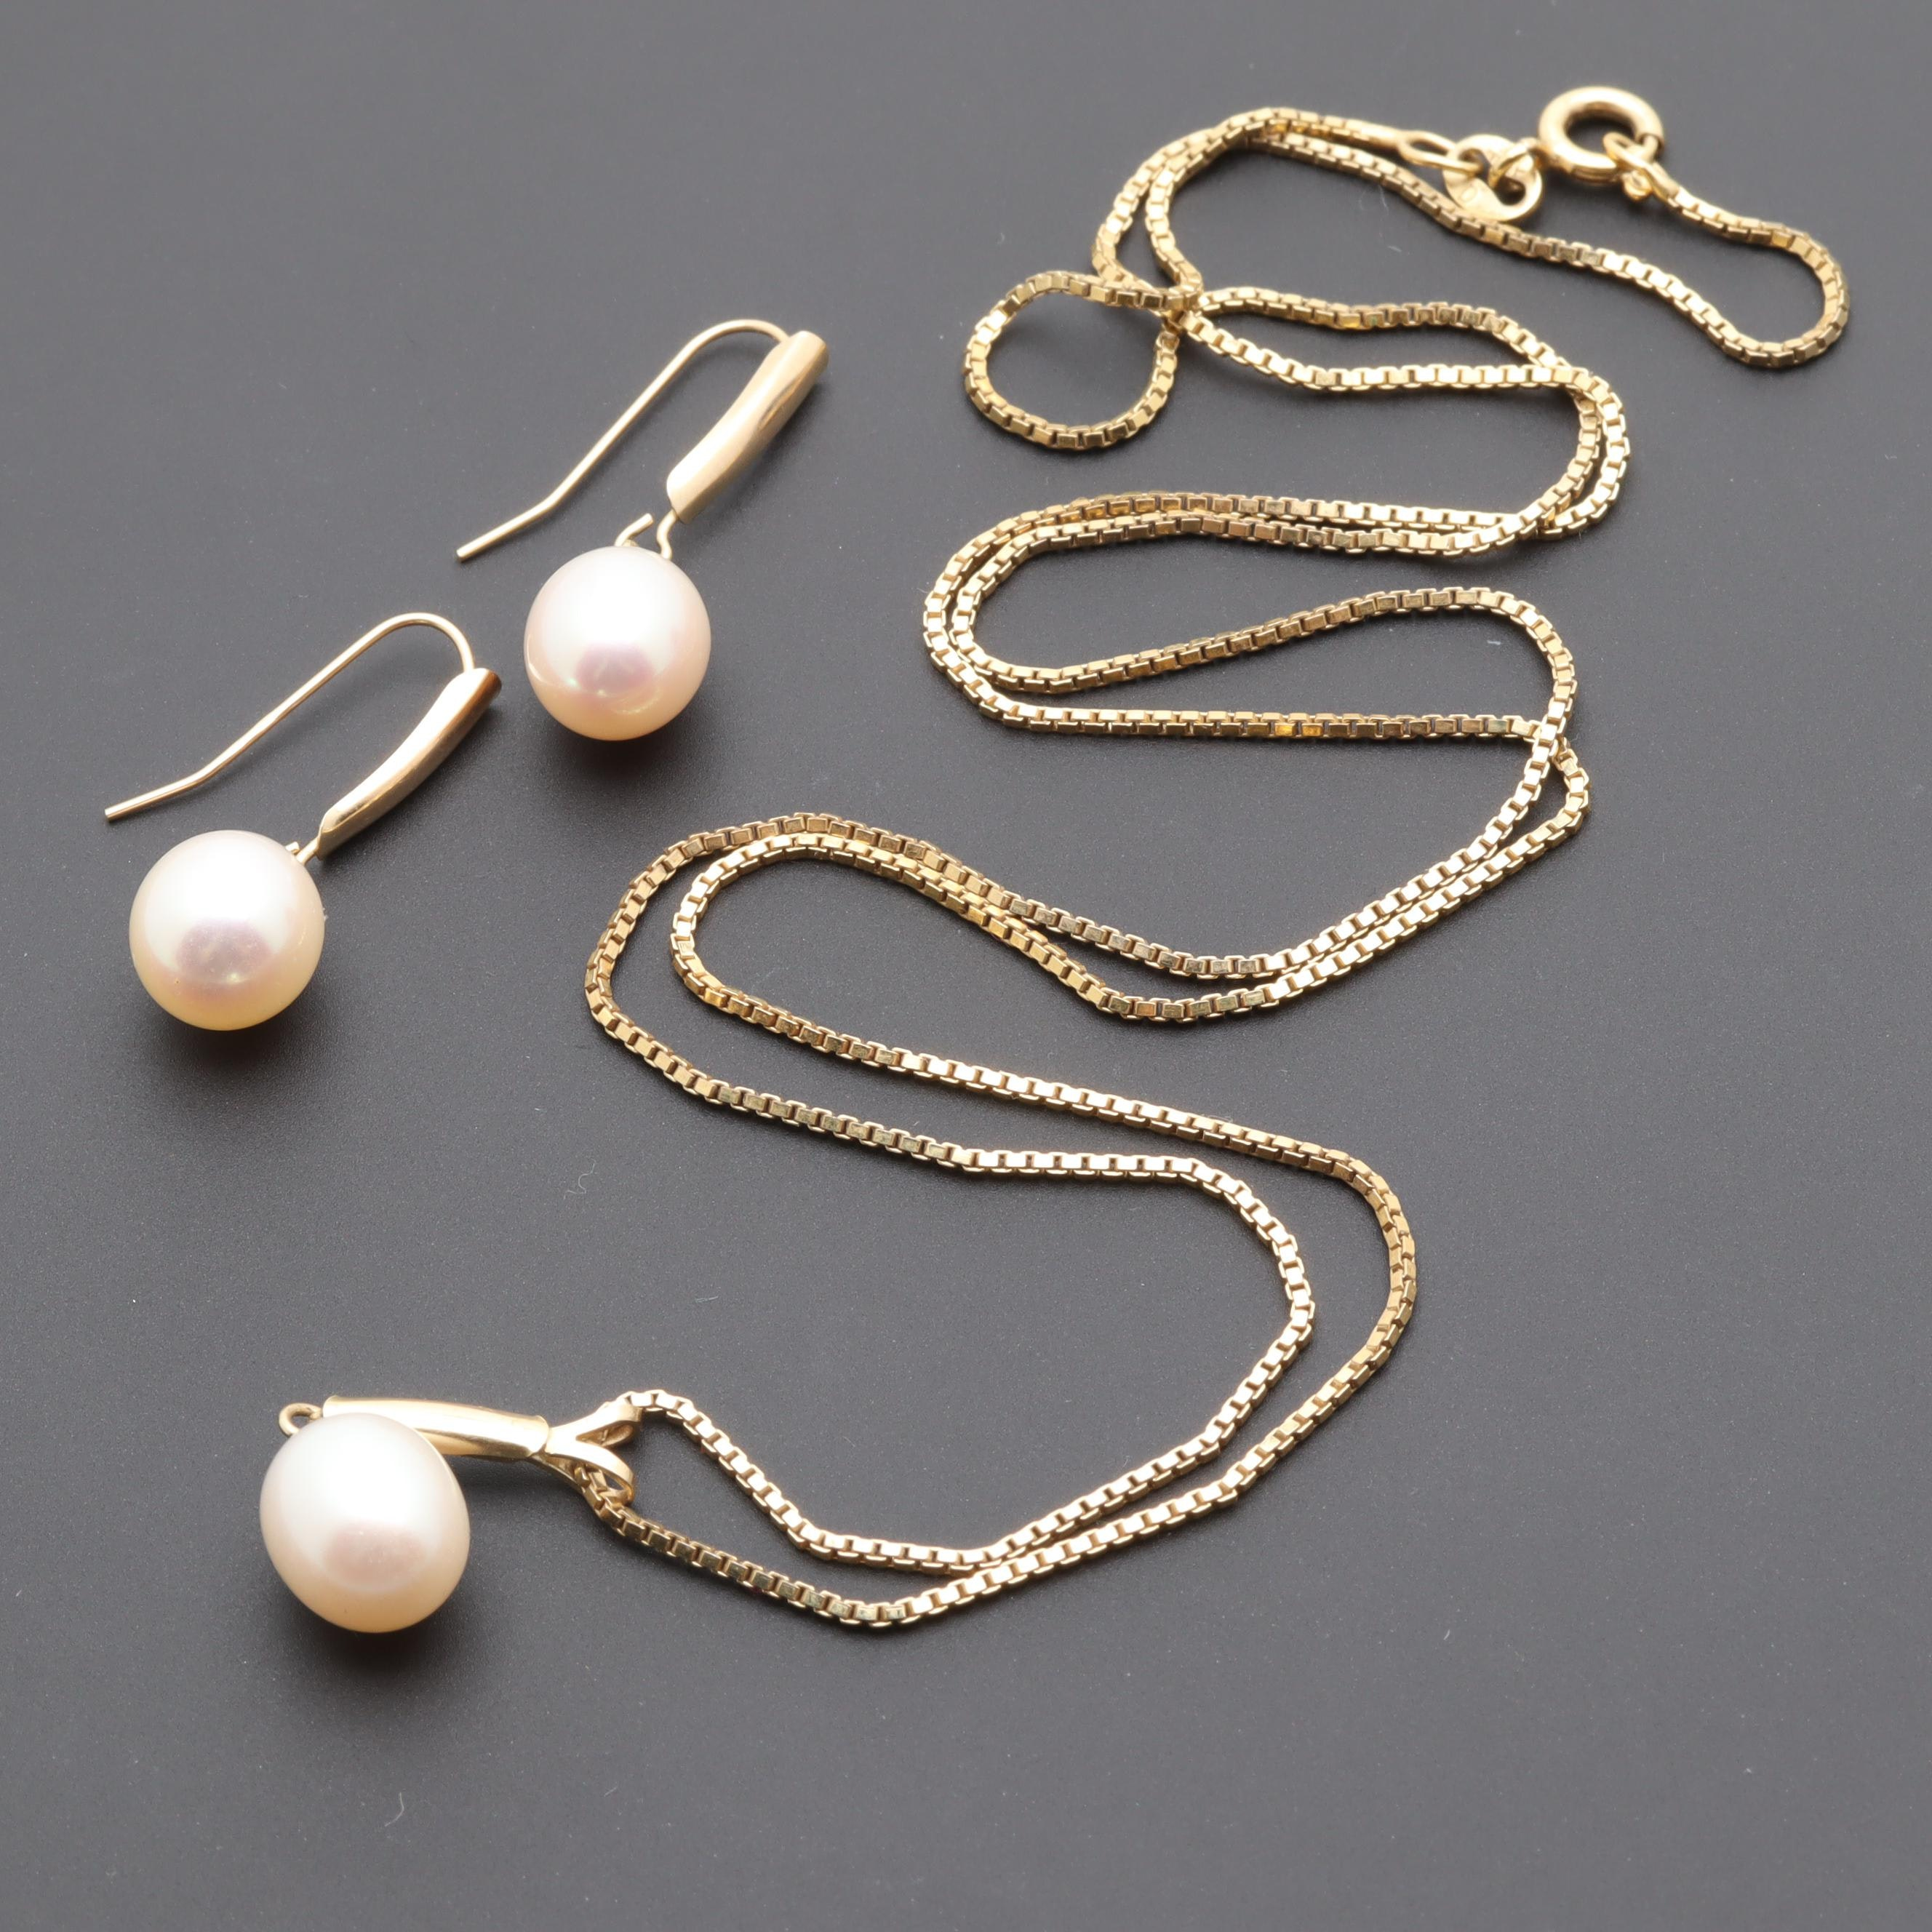 14K Gold Cultured Pearl Earrings and Pendant With Sterling Silver Chain